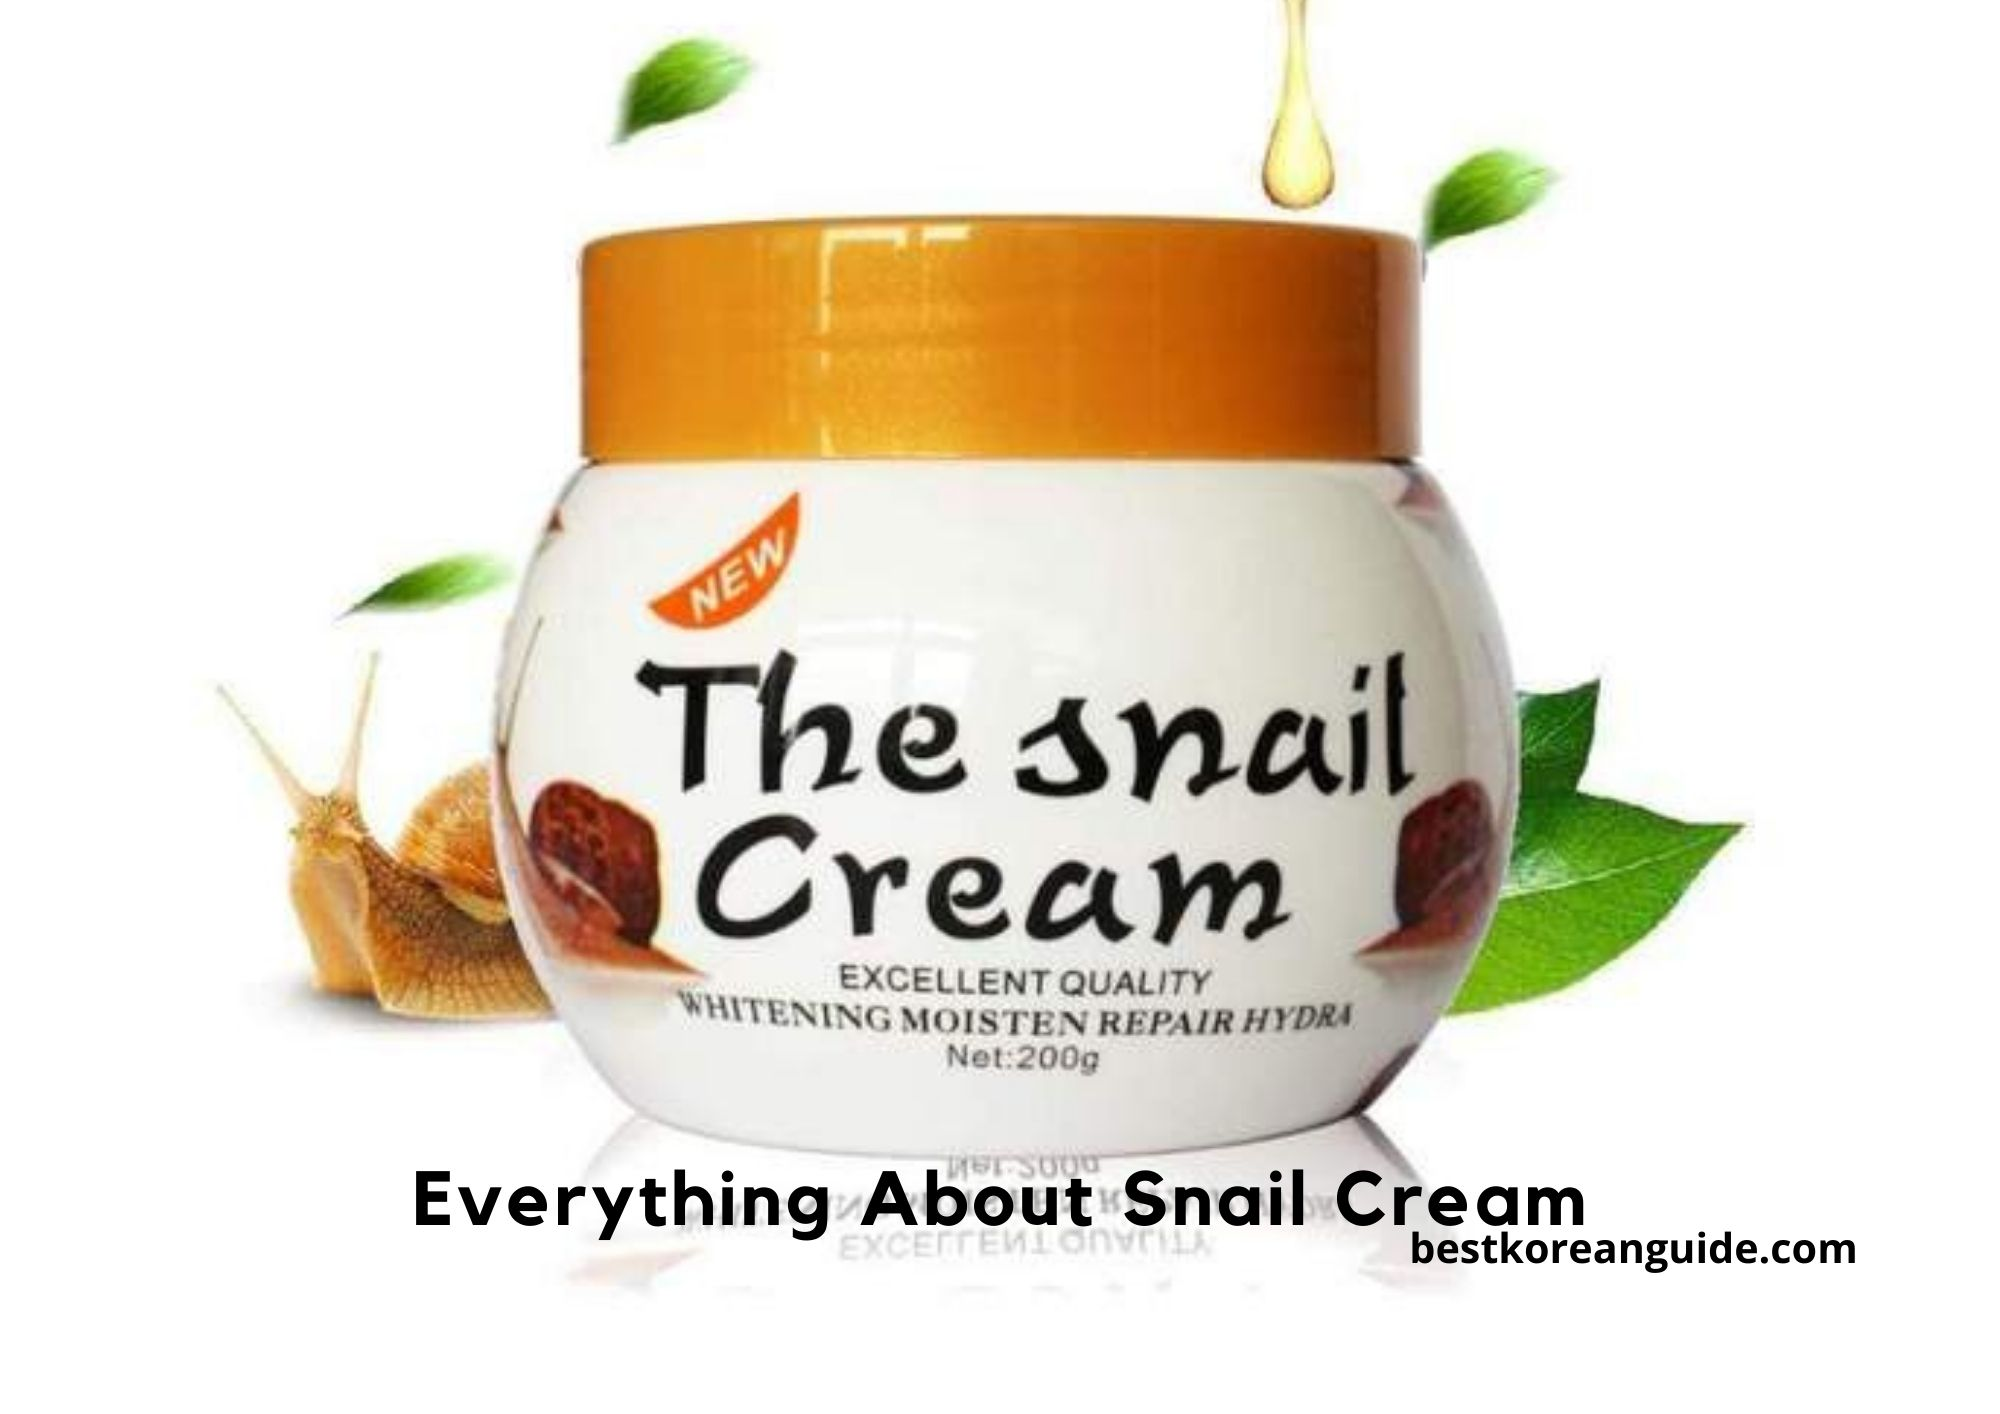 Everything About Snail Cream